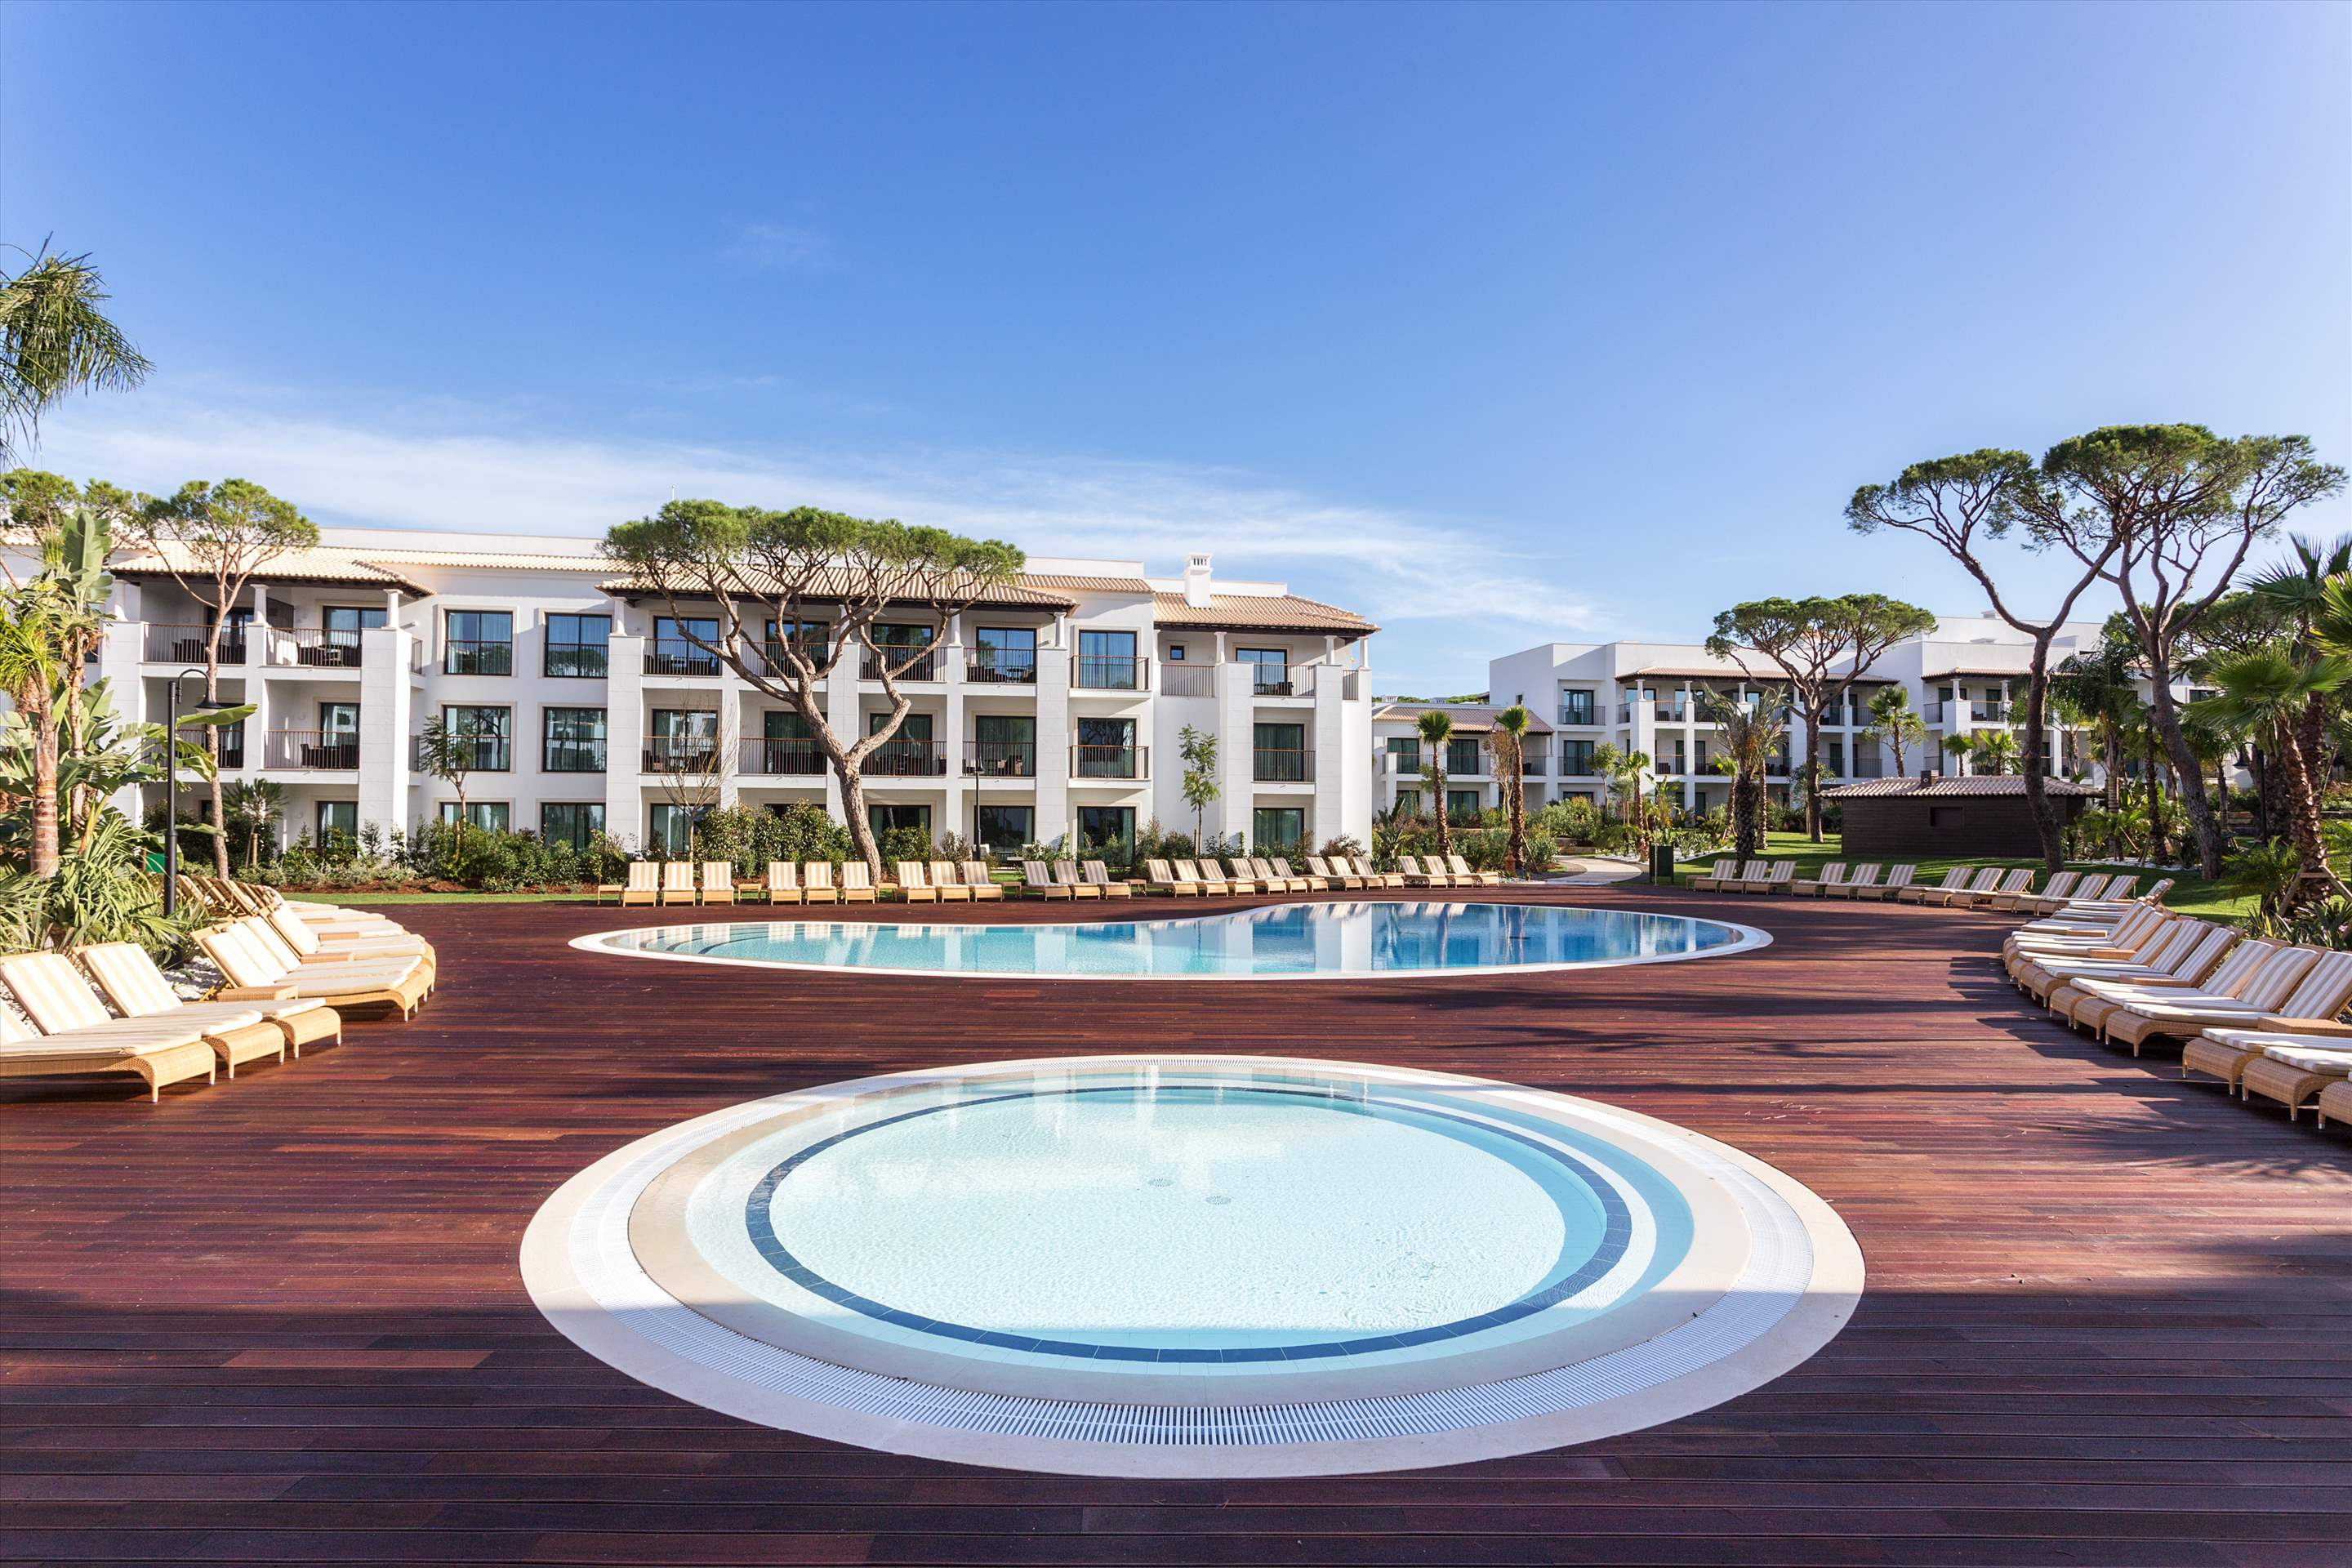 Pine Cliffs Gardens, One Bedroom Suite, S/C Basis, 1 bedroom apartment in Pine Cliffs Resort, Algarve Photo #7